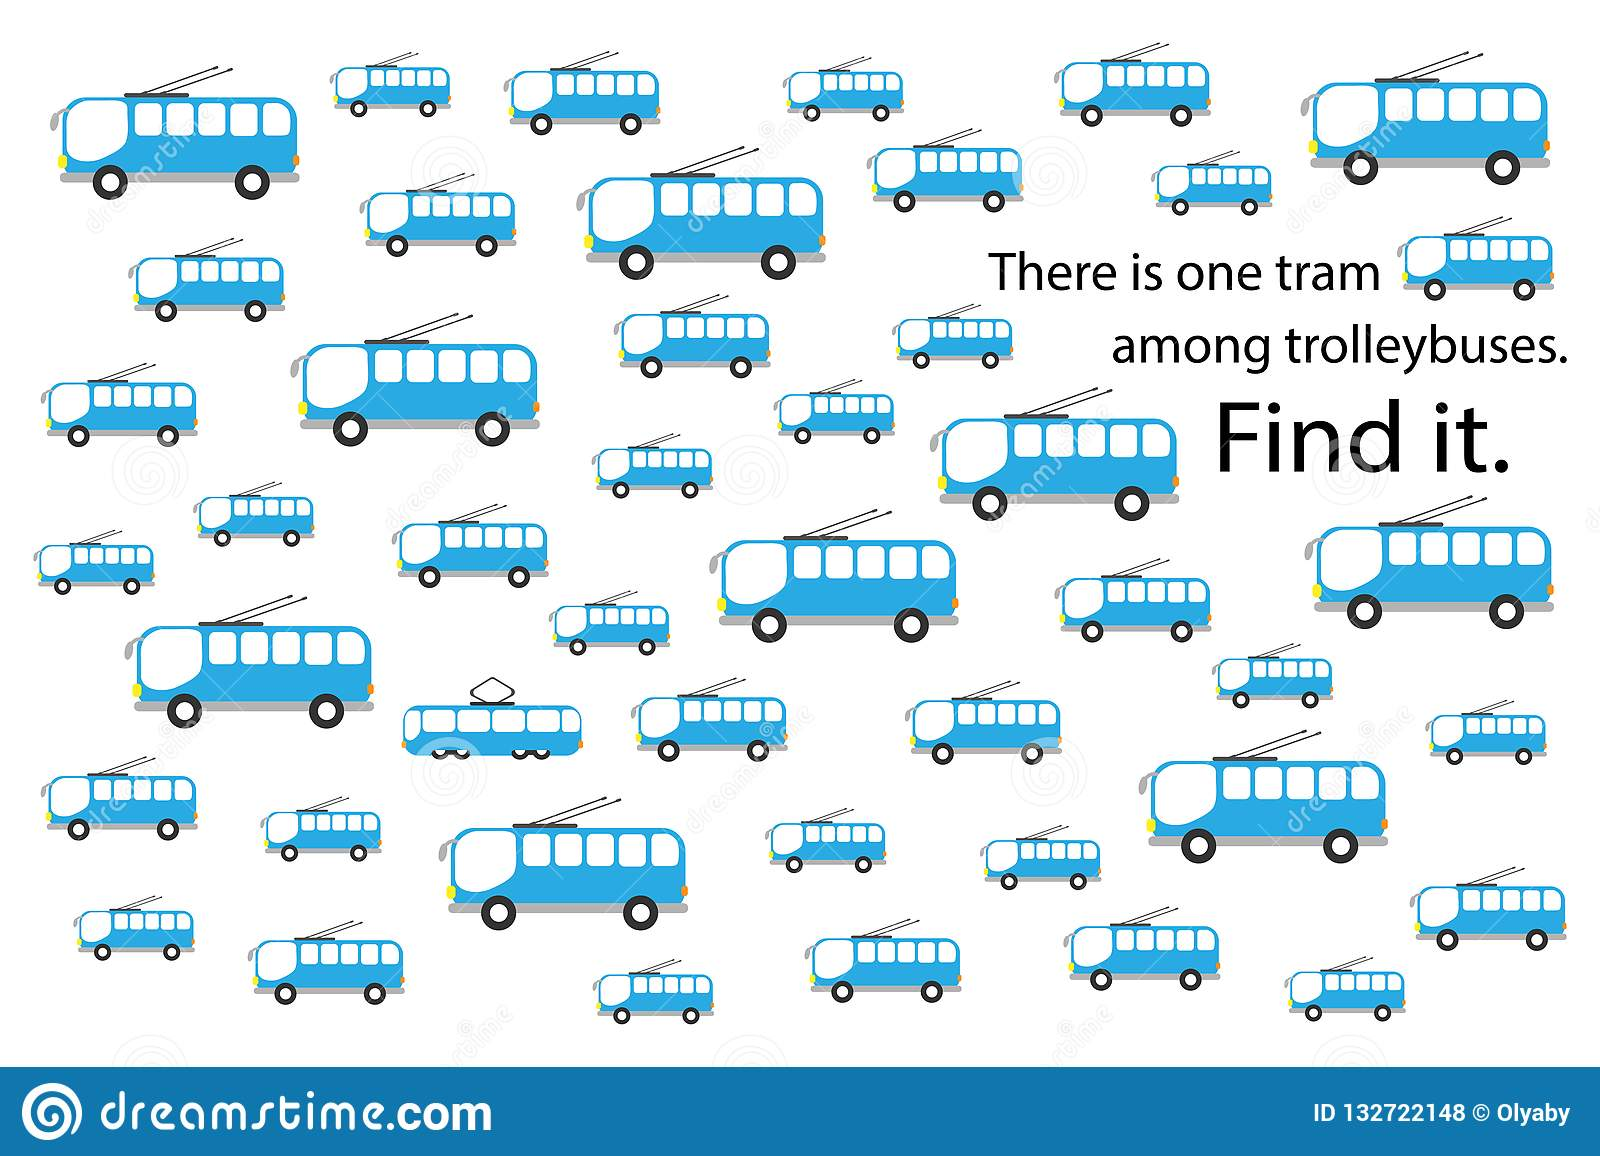 Find Tram Among Trolleybuses Fun Education Puzzle Game